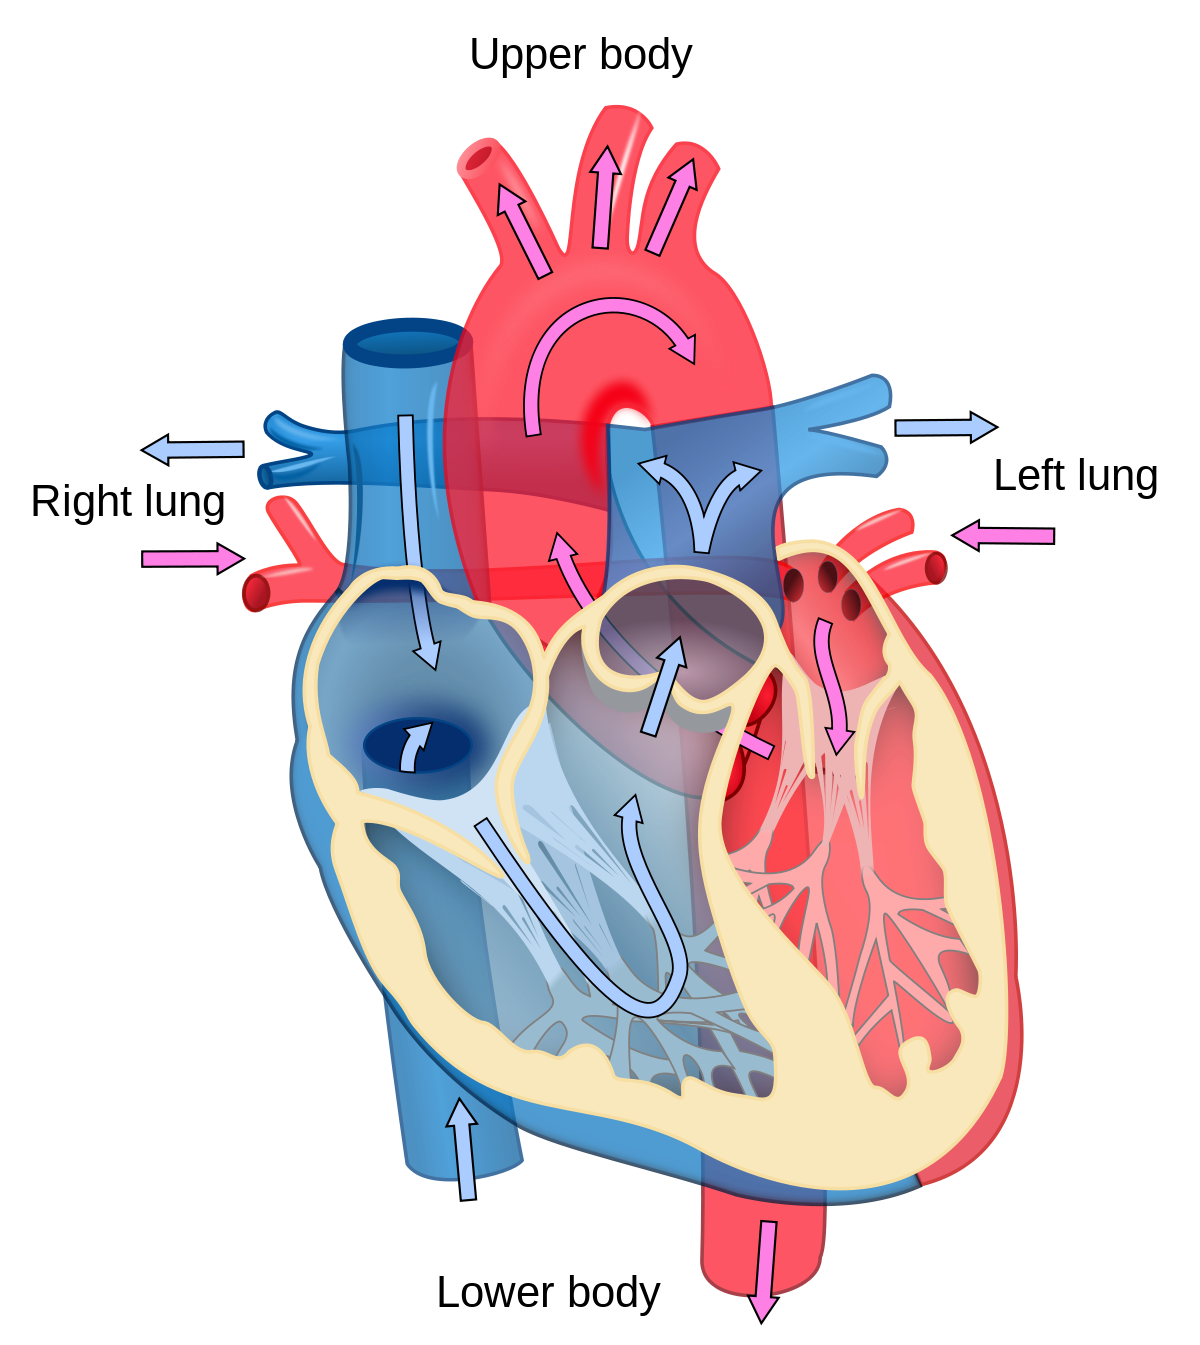 Clipart definition ingredient. Cardiology wikipedia